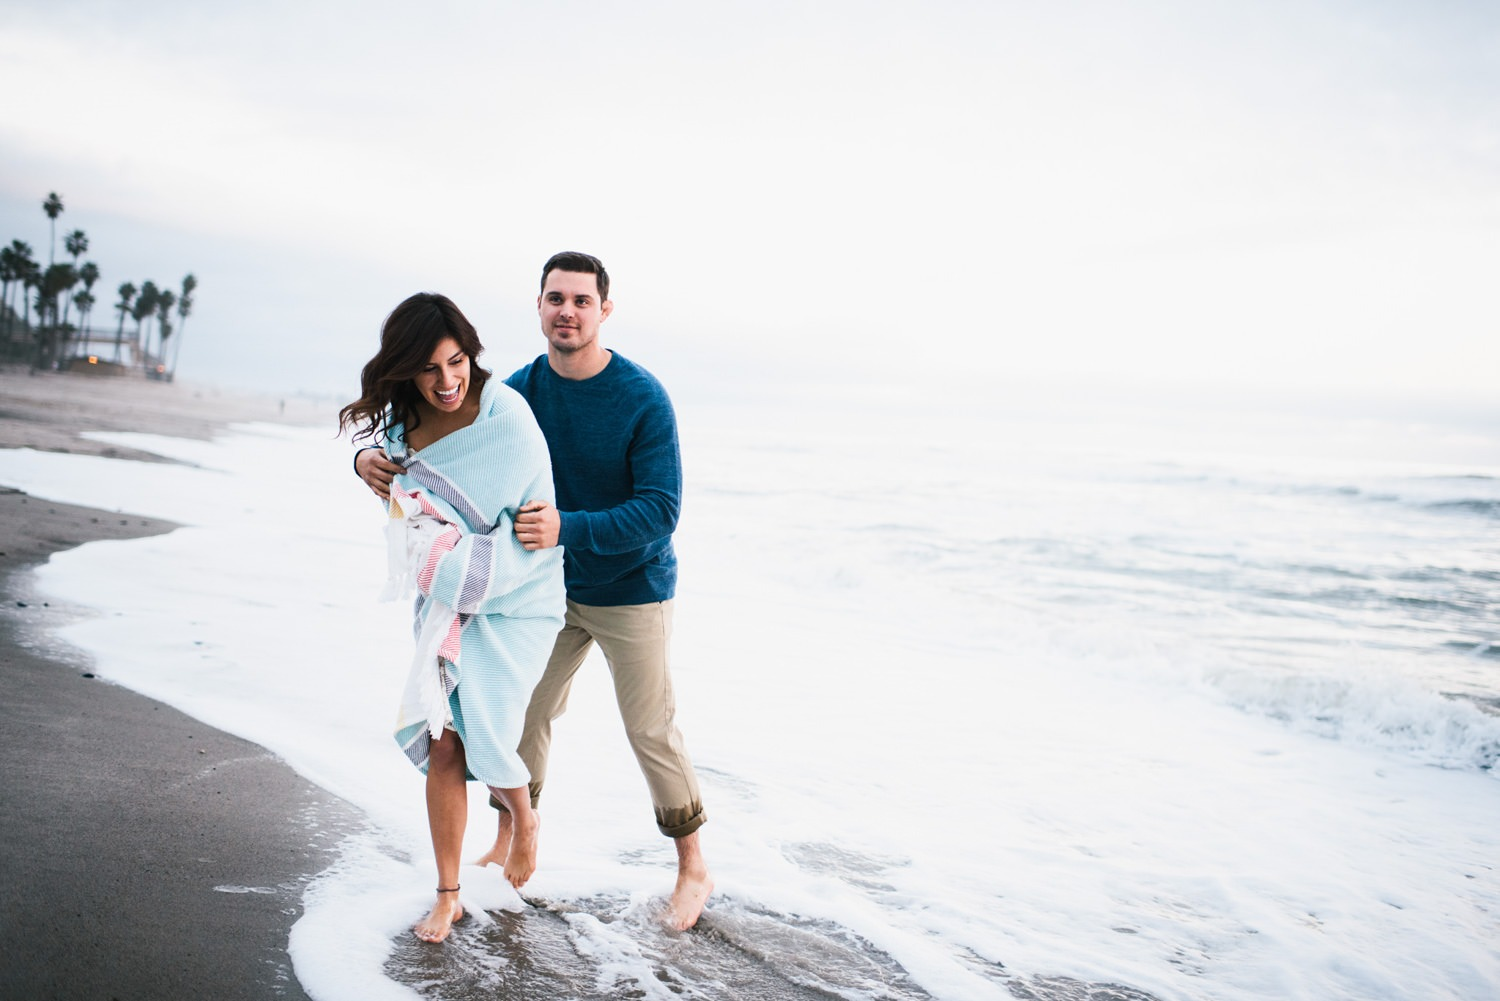 engagement shoot on the beach - Best LA Wedding Photography